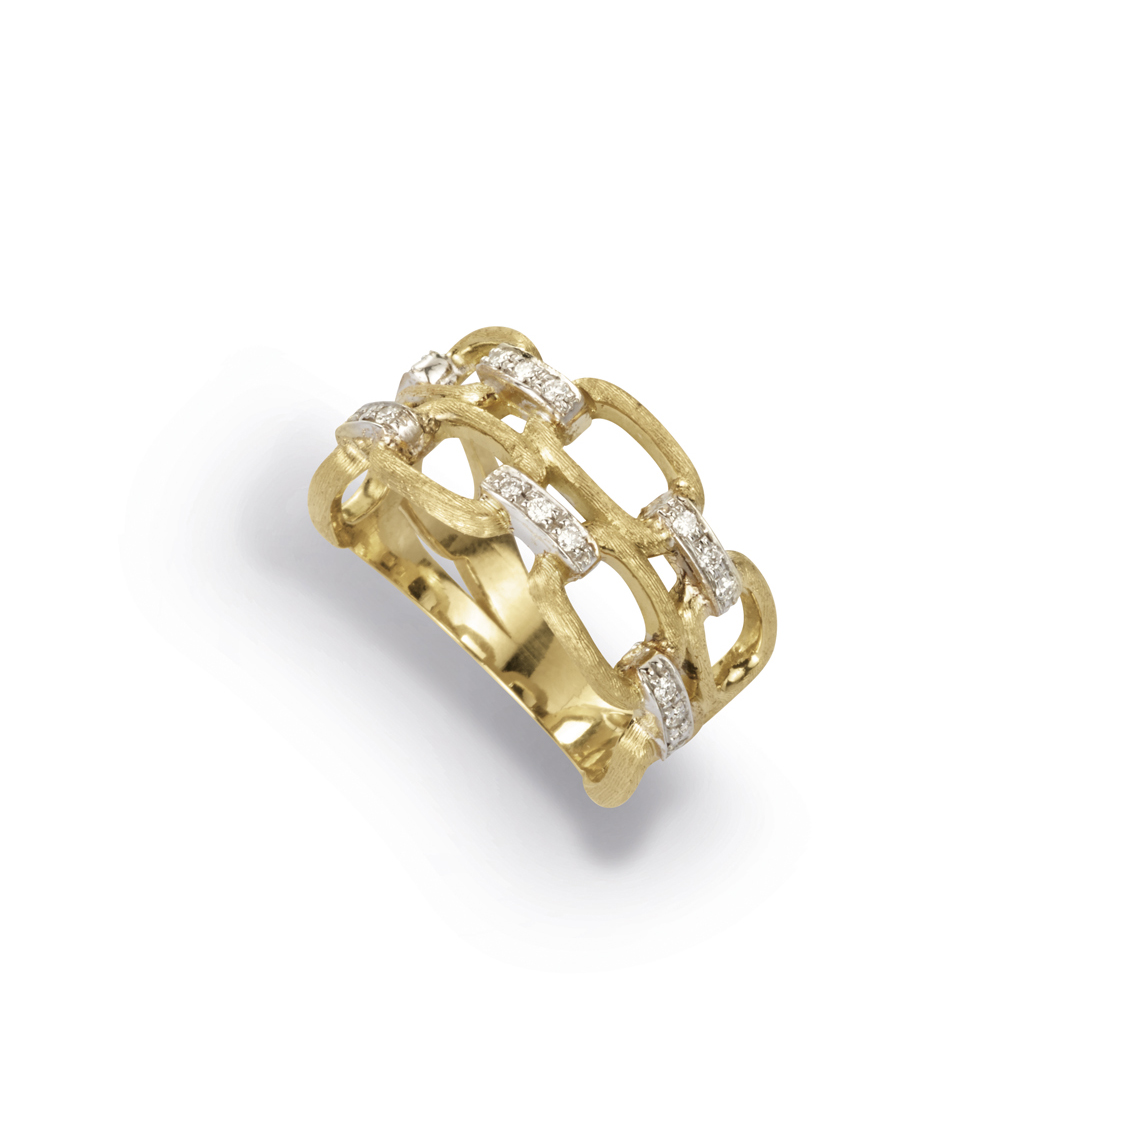 Marco Bicego Murano Link Double Band Ring